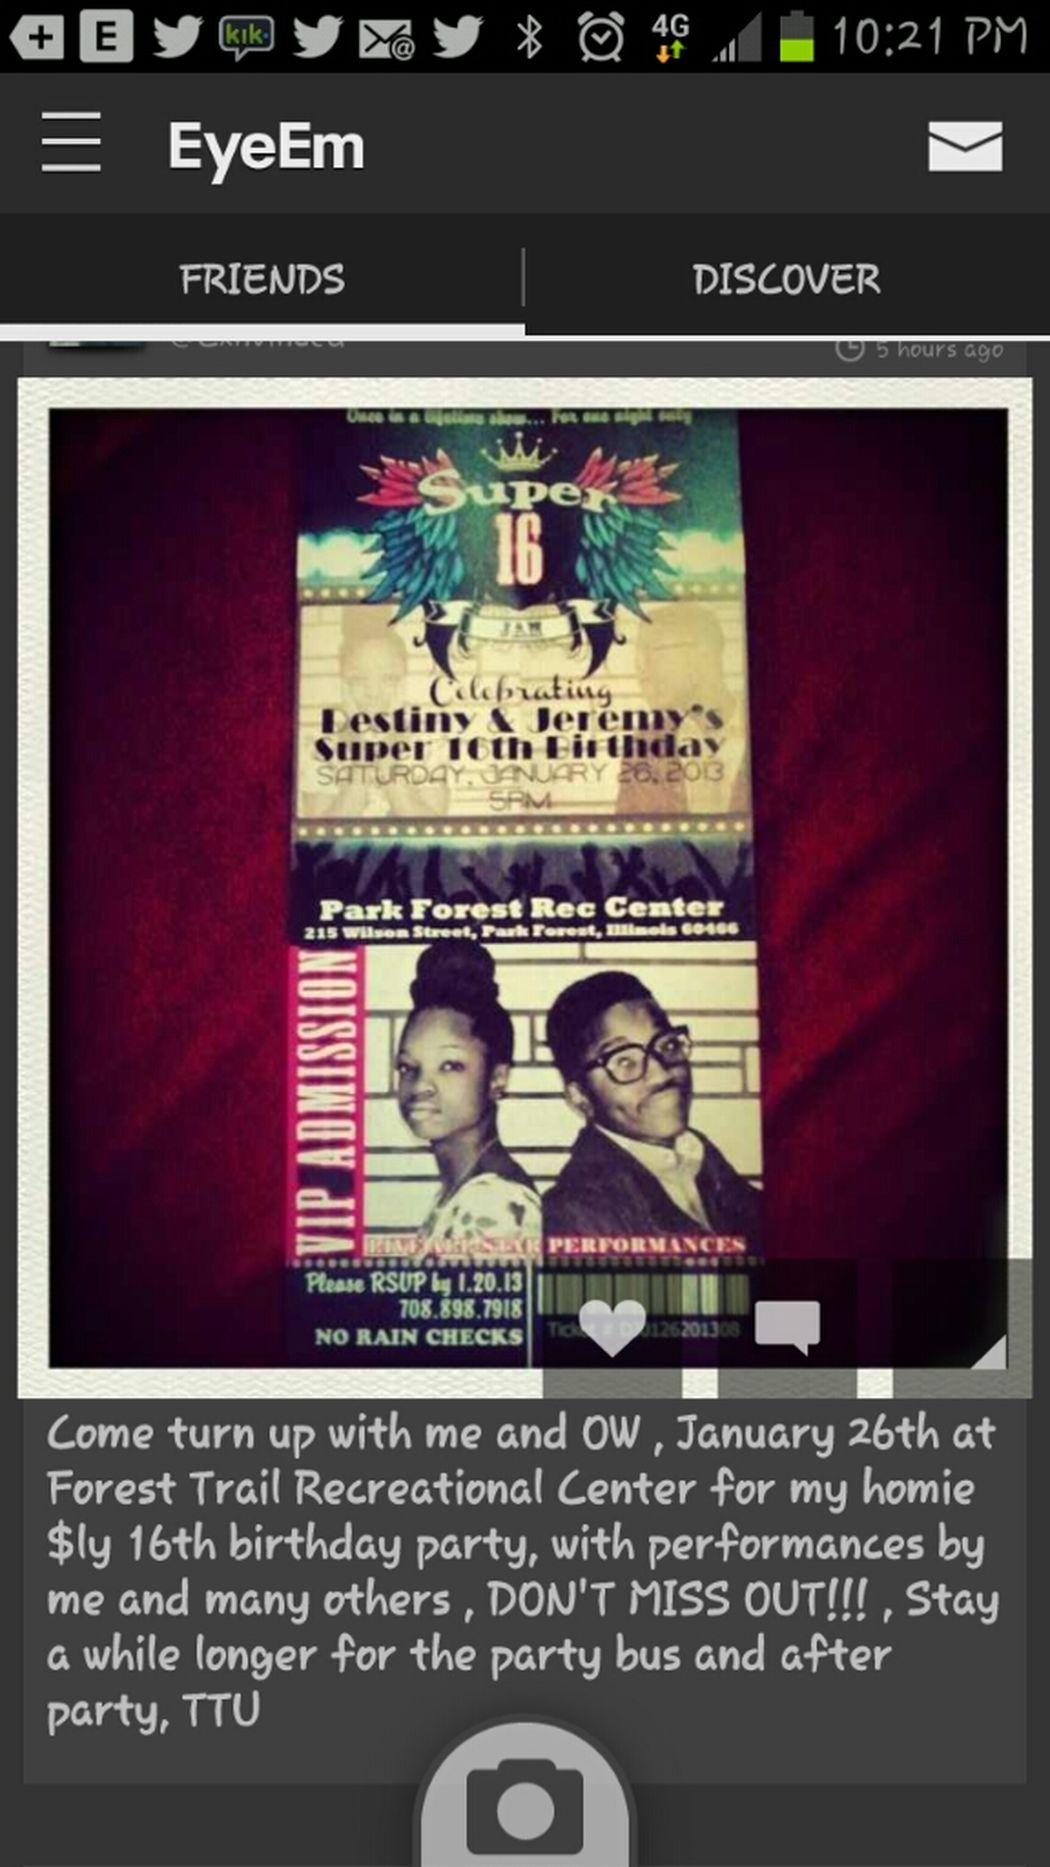 Aye! Everybody Come Turn Up With Me & My Niggas For Jeremy Bday! Plan To Stay For The After Party! It's Gon Be Live!